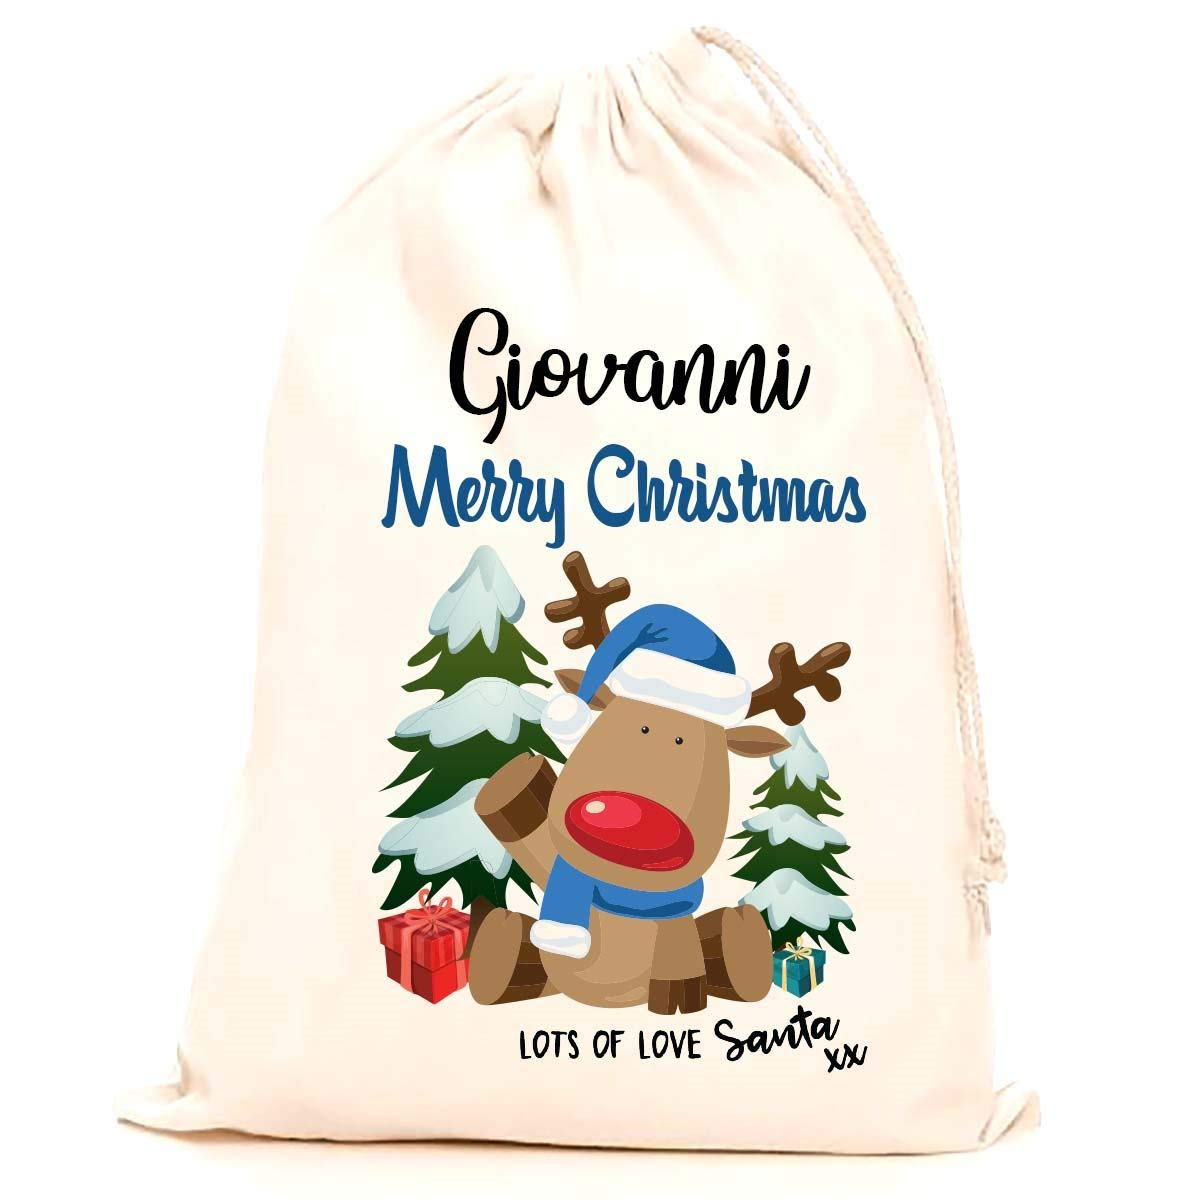 Treat Me Suite Giovanni personalised name Christmas santa sack, stocking printed with a blue reindeer (75x50cm) 100% Cotton Large. Children, Kids, making it the perfect keepsake xmas gift/present. CS Printing Limited